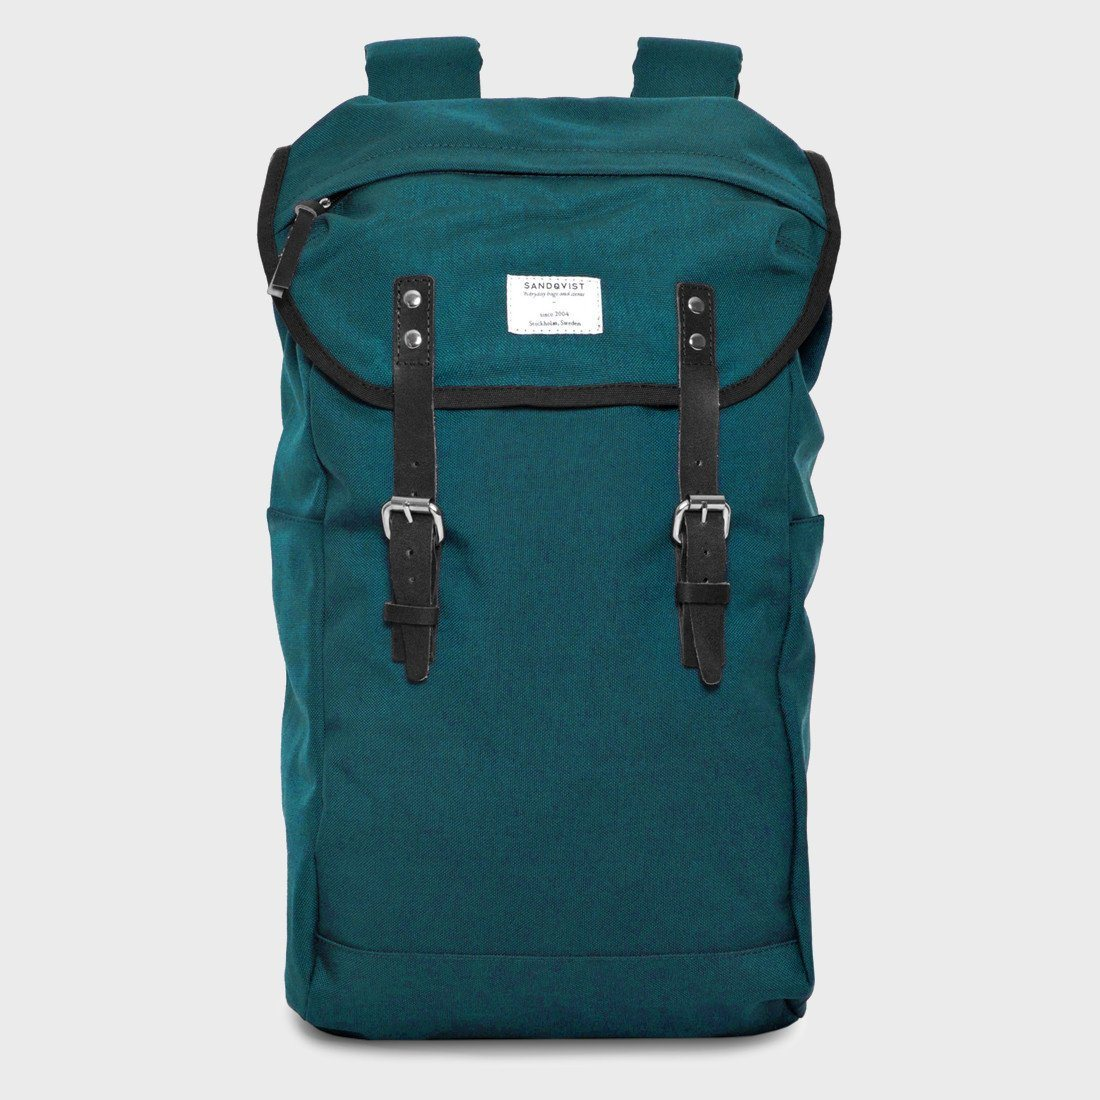 Sandqvist Hans Backpack Petrol Blue